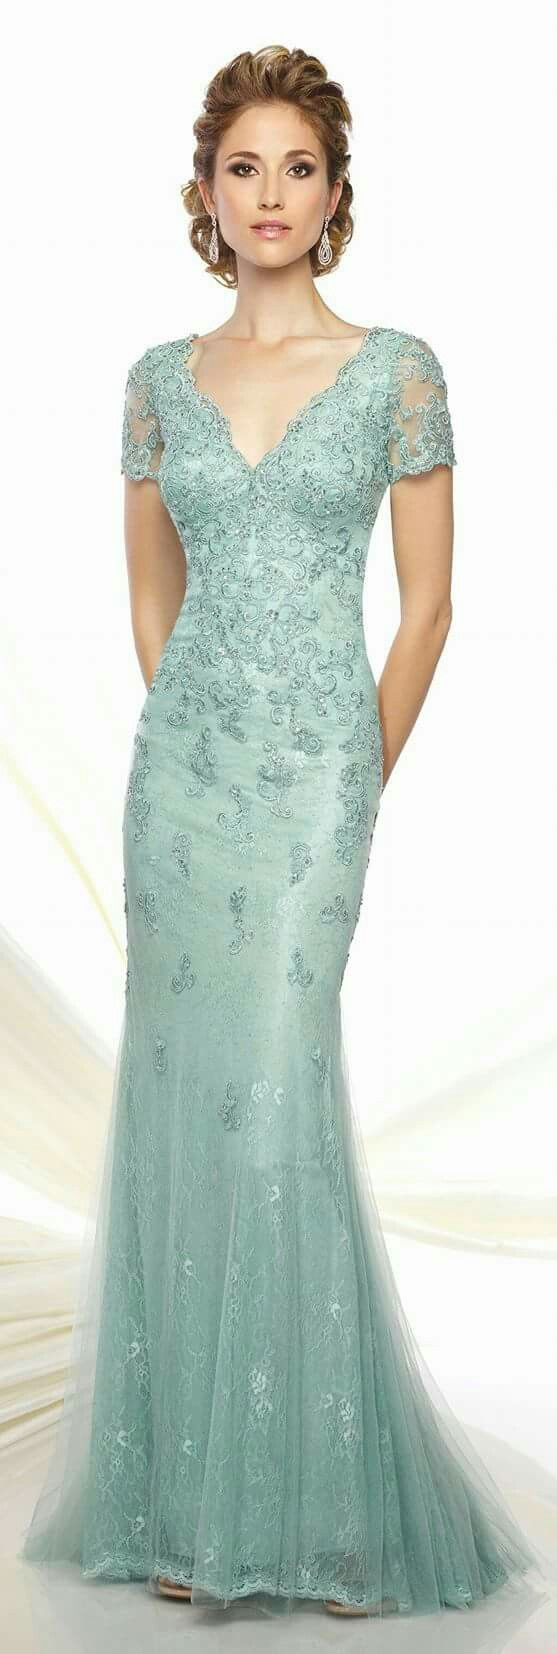 926 best Mint Green images on Pinterest | Mint green, Casamento and ...